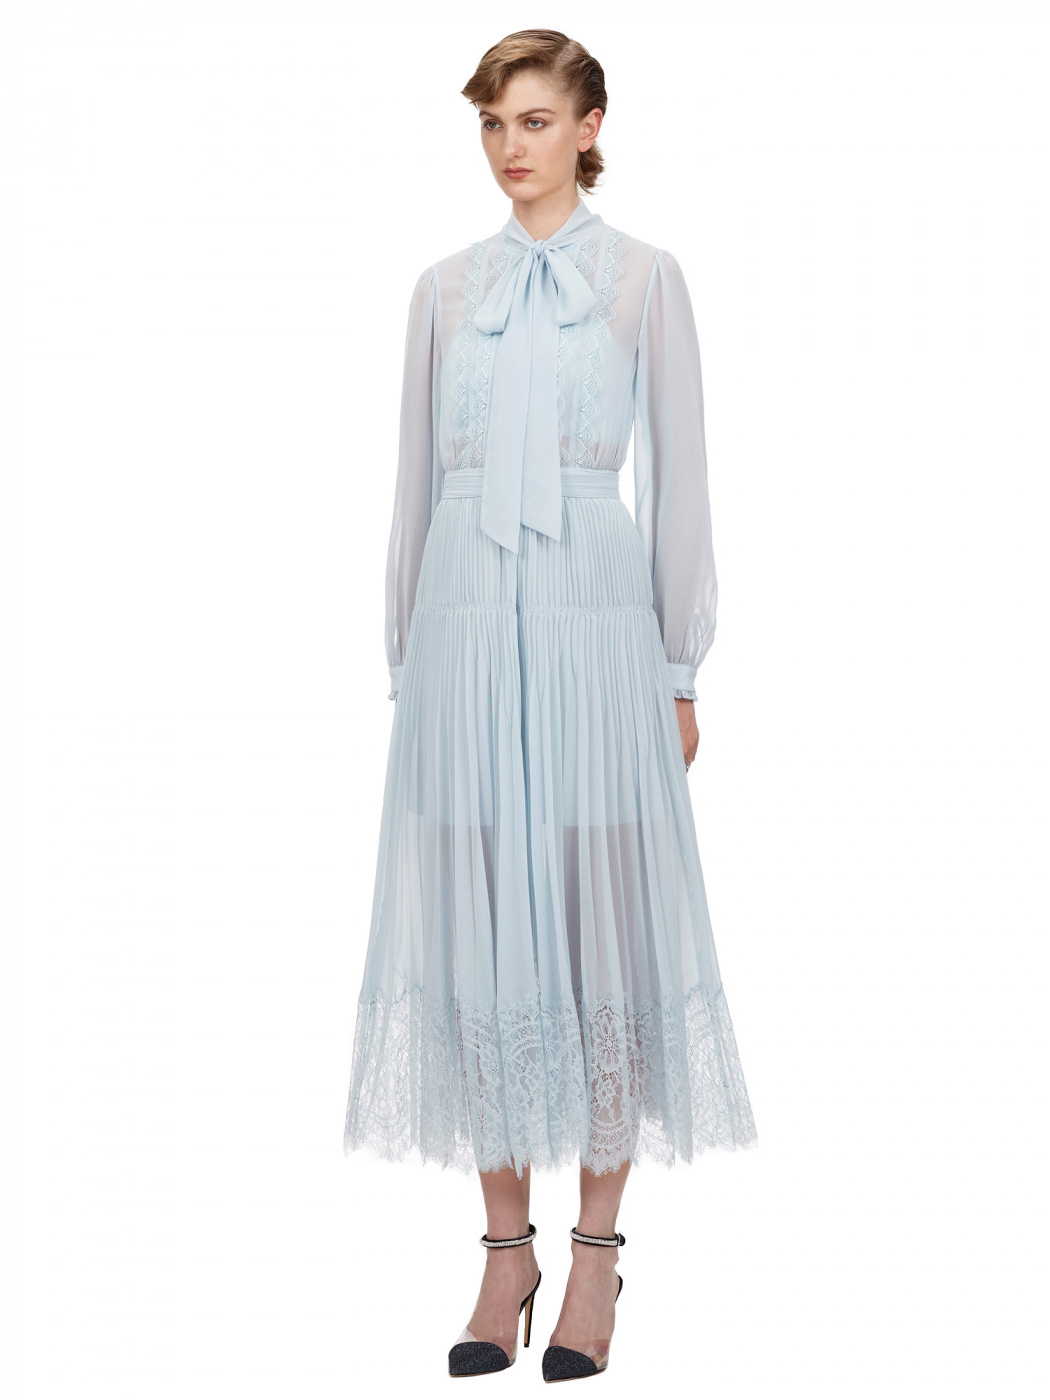 self-portrait pale blue chiffon-trimmed dress